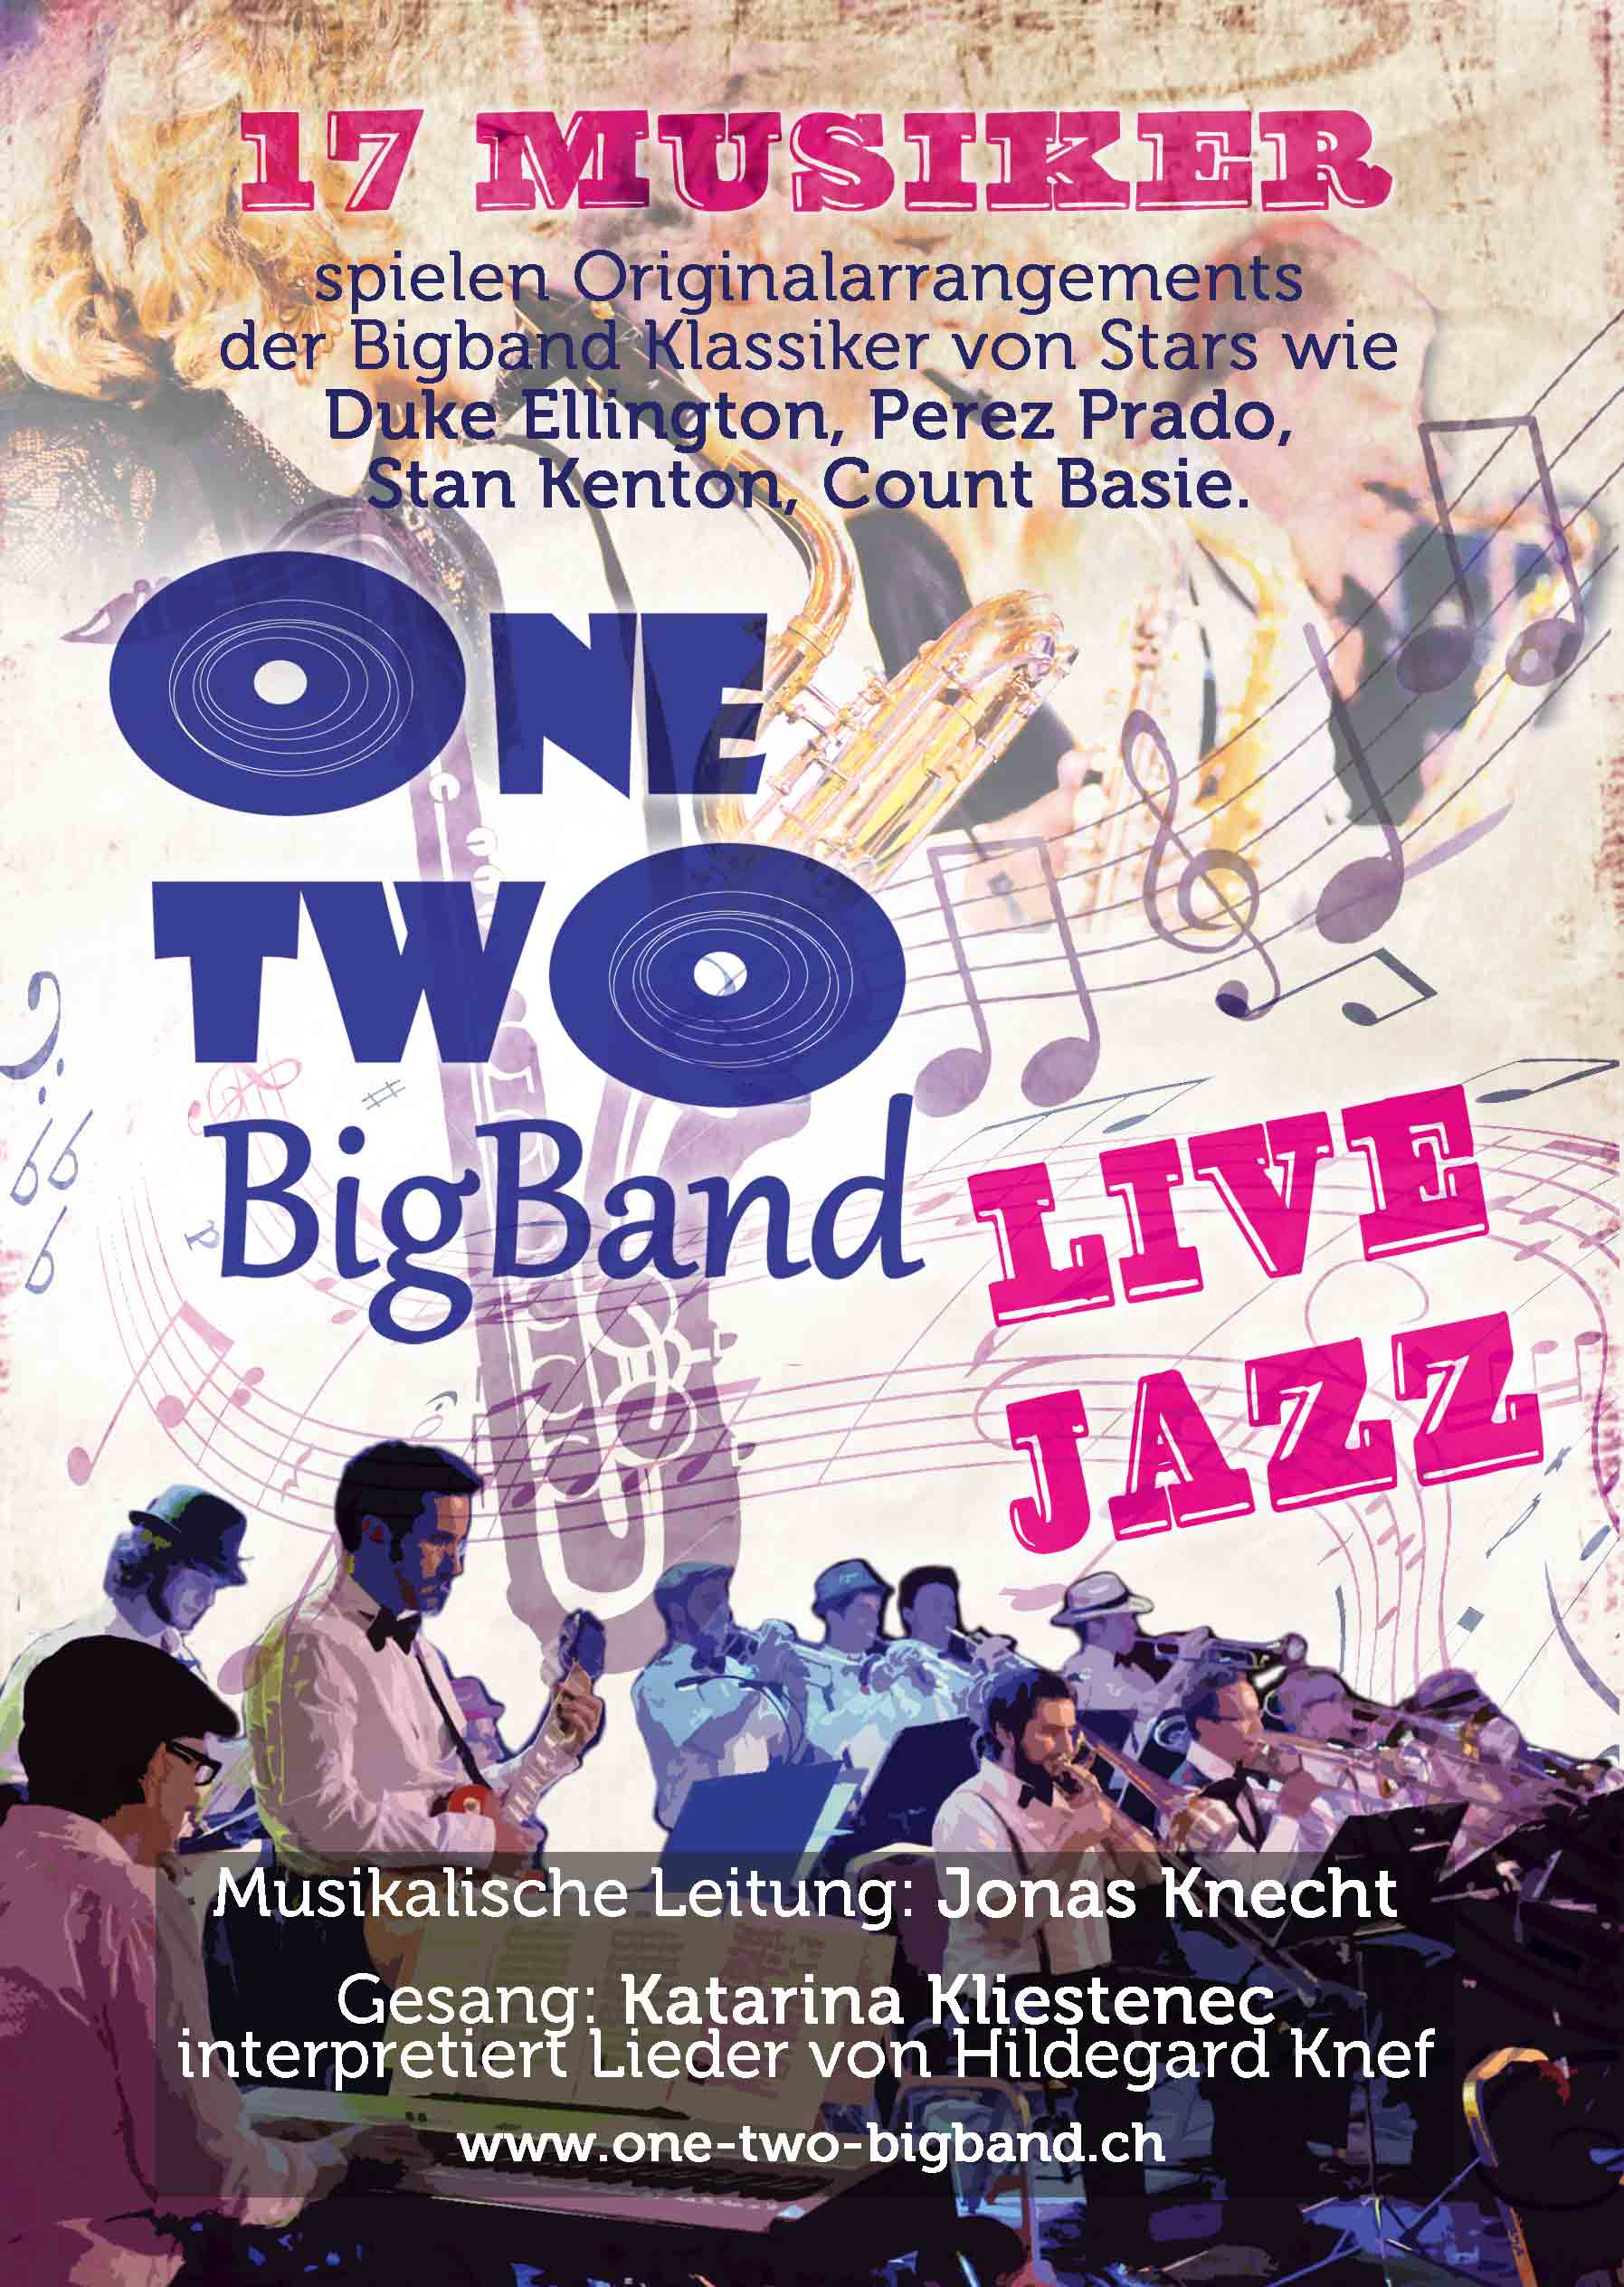 Flyer One Two Bigband 2015 vorne